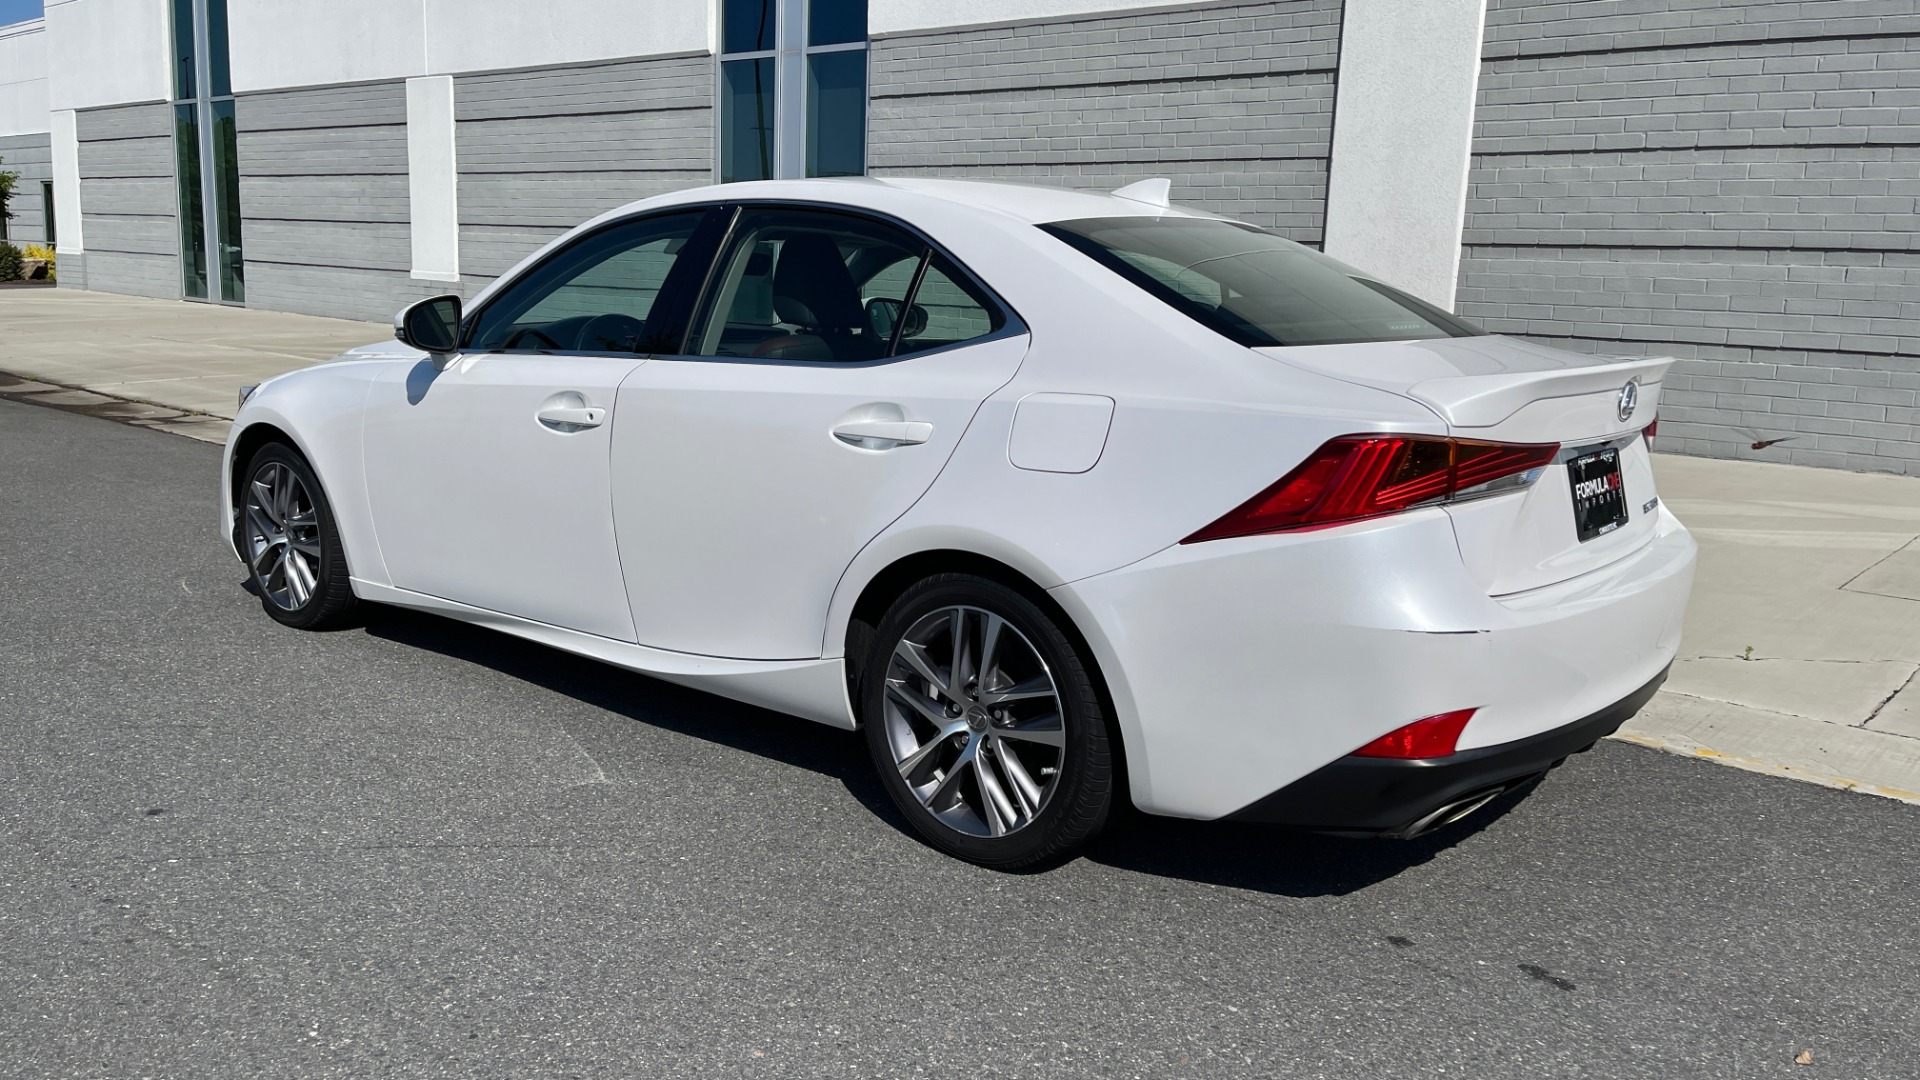 Used 2018 Lexus IS 300 / 2.0L TURBO / 8-SPD AUTO / SUNROOF / REARVIEW for sale $29,495 at Formula Imports in Charlotte NC 28227 5